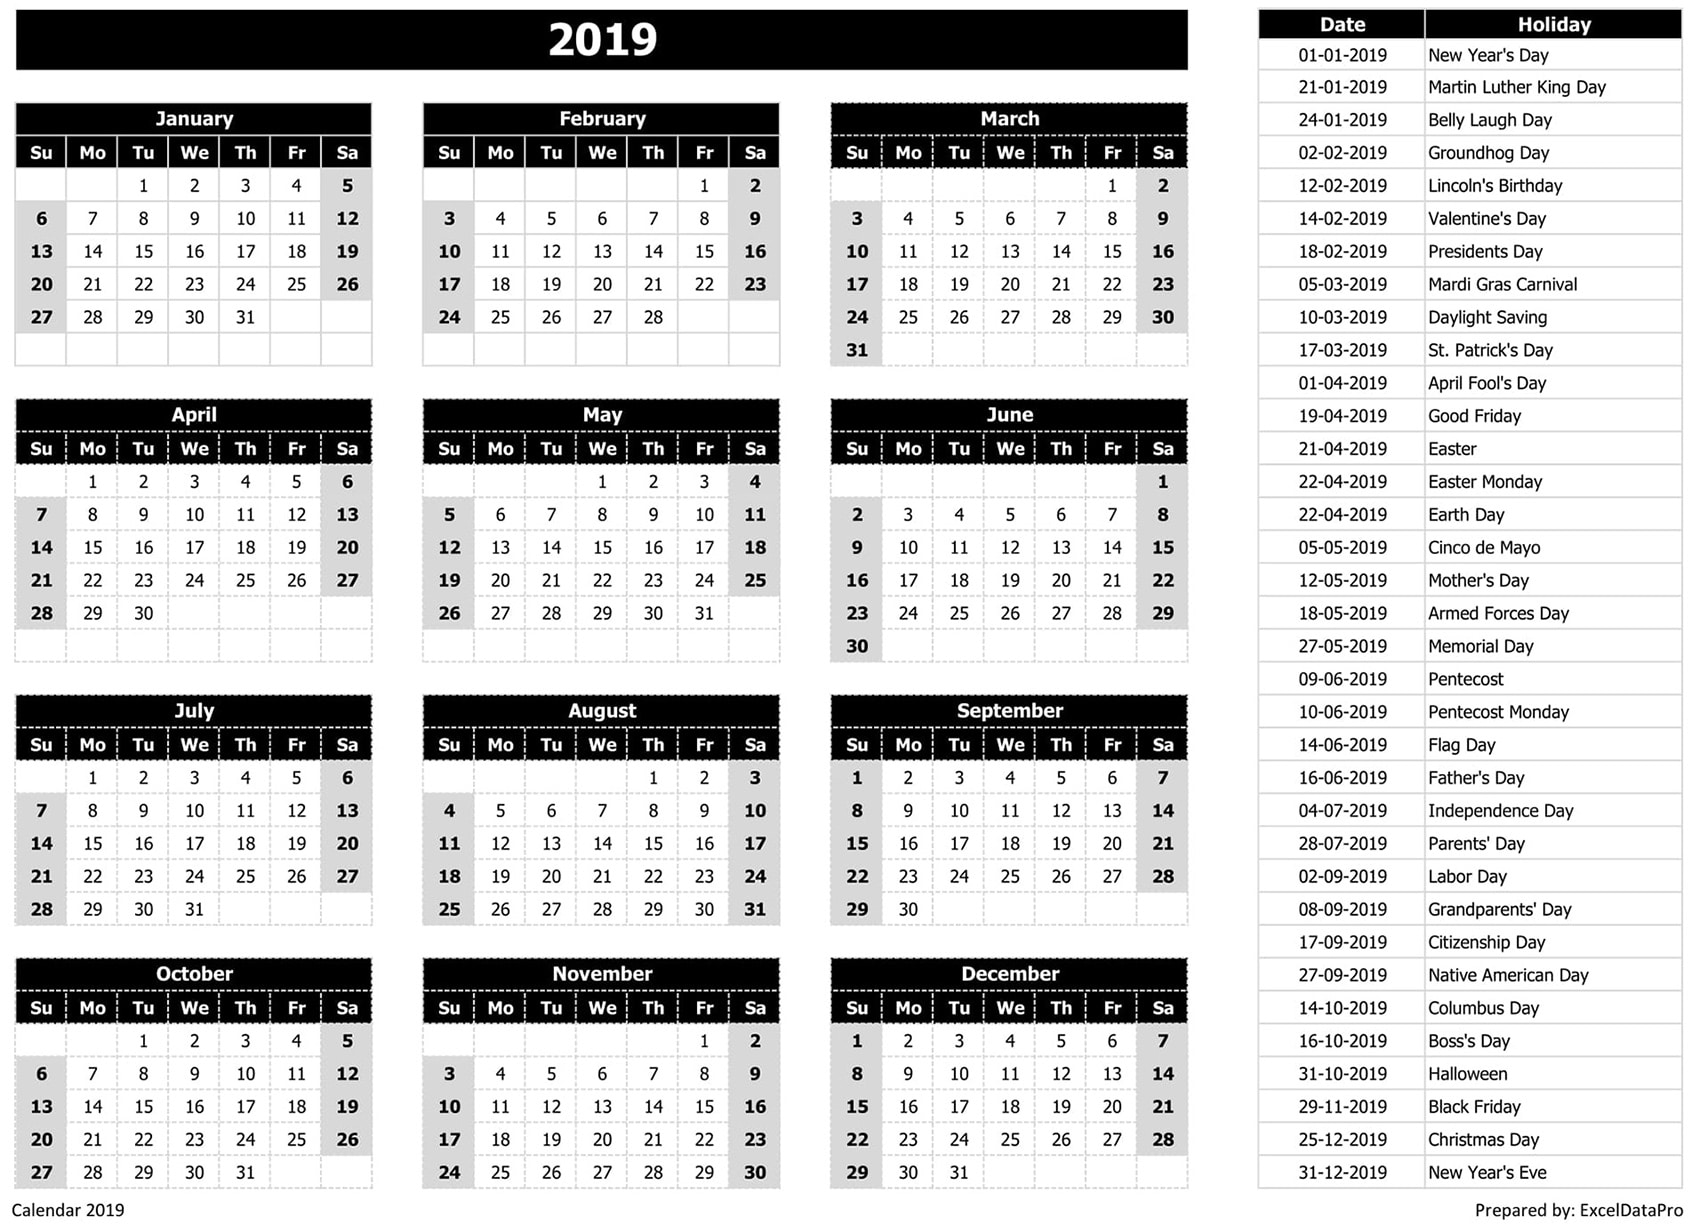 2019 Calendar Excel Templates, Printable PDFs & Images - ExcelDataPro